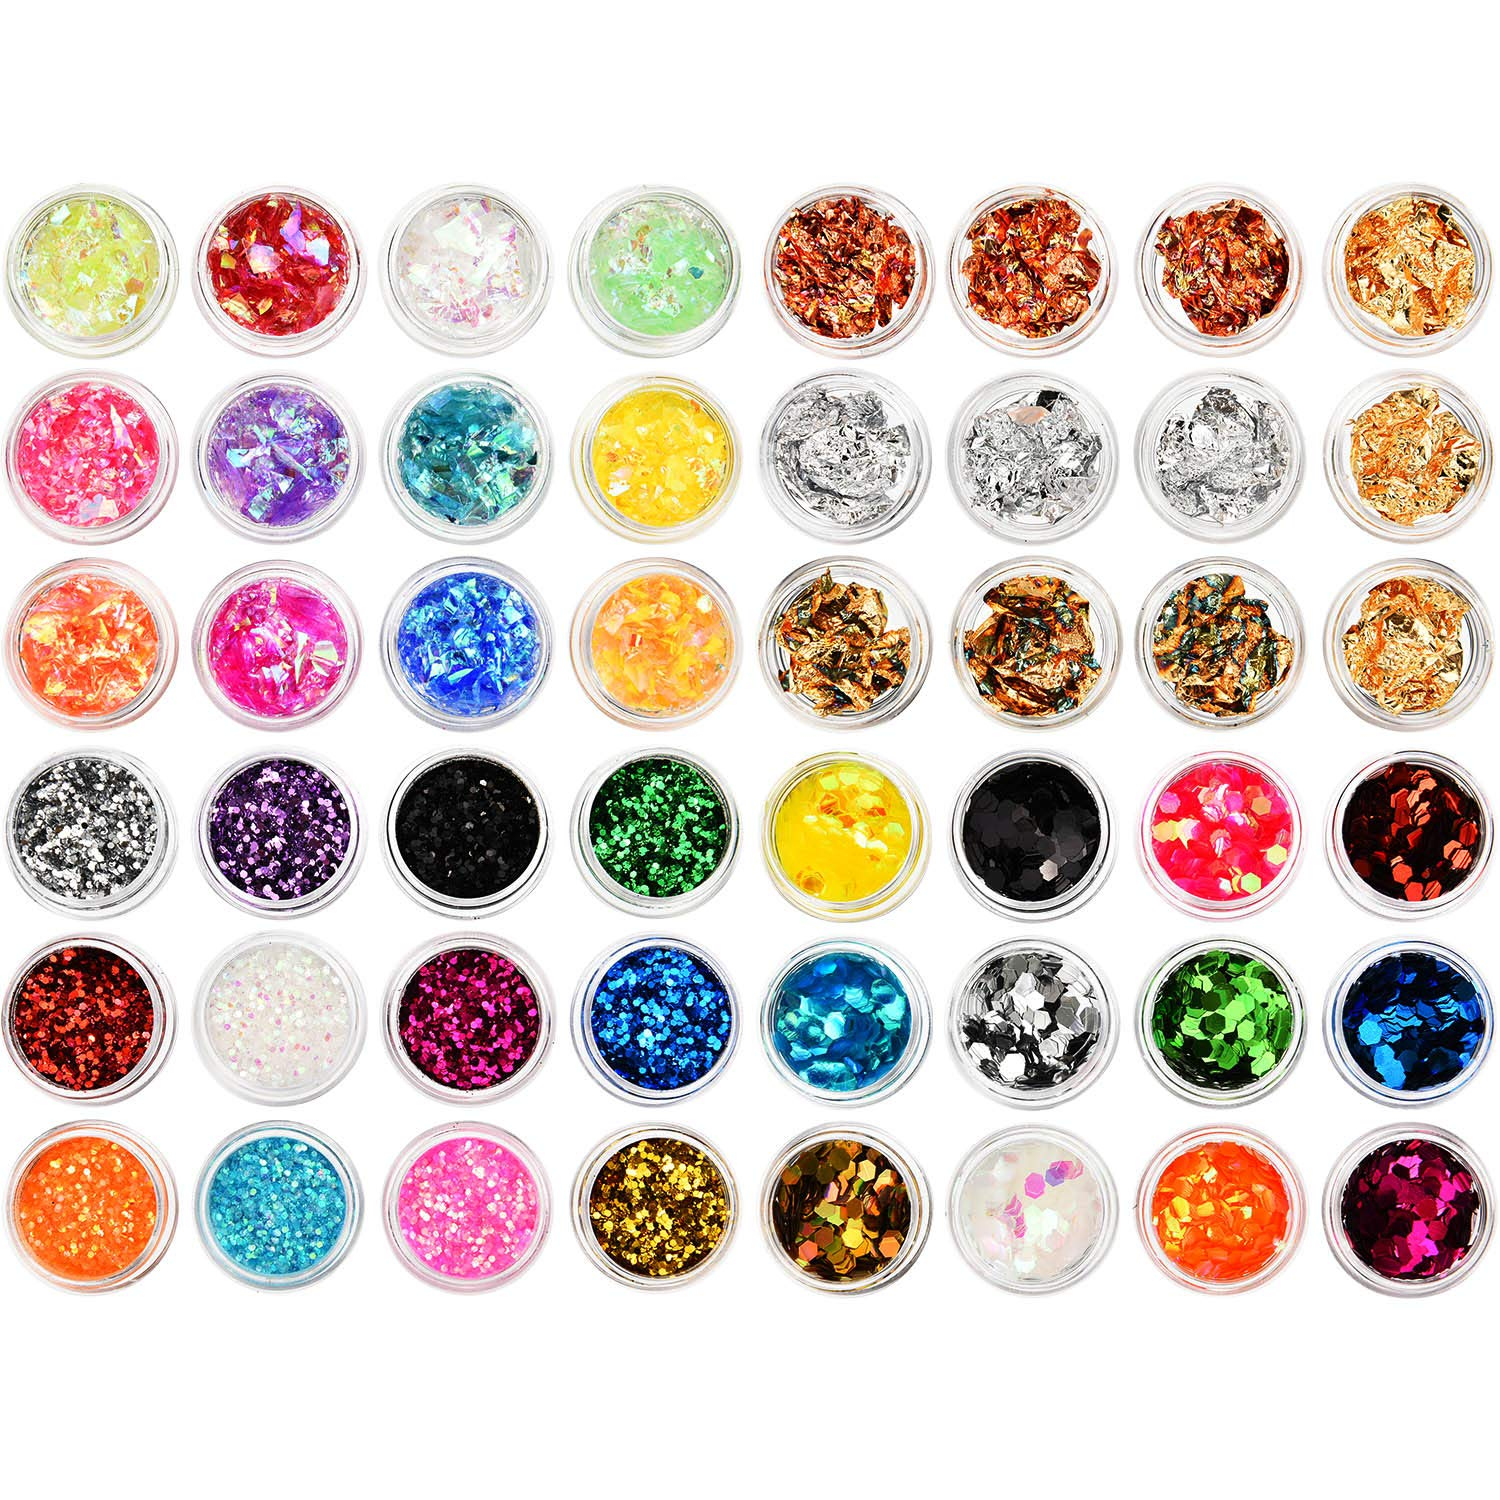 BBTO 48 Sets Nail Chunky Glitter Sequins Foil Nail Chips Ice Mylar Shell Foil Slice Mixed Nail Art Decorations by BBTO